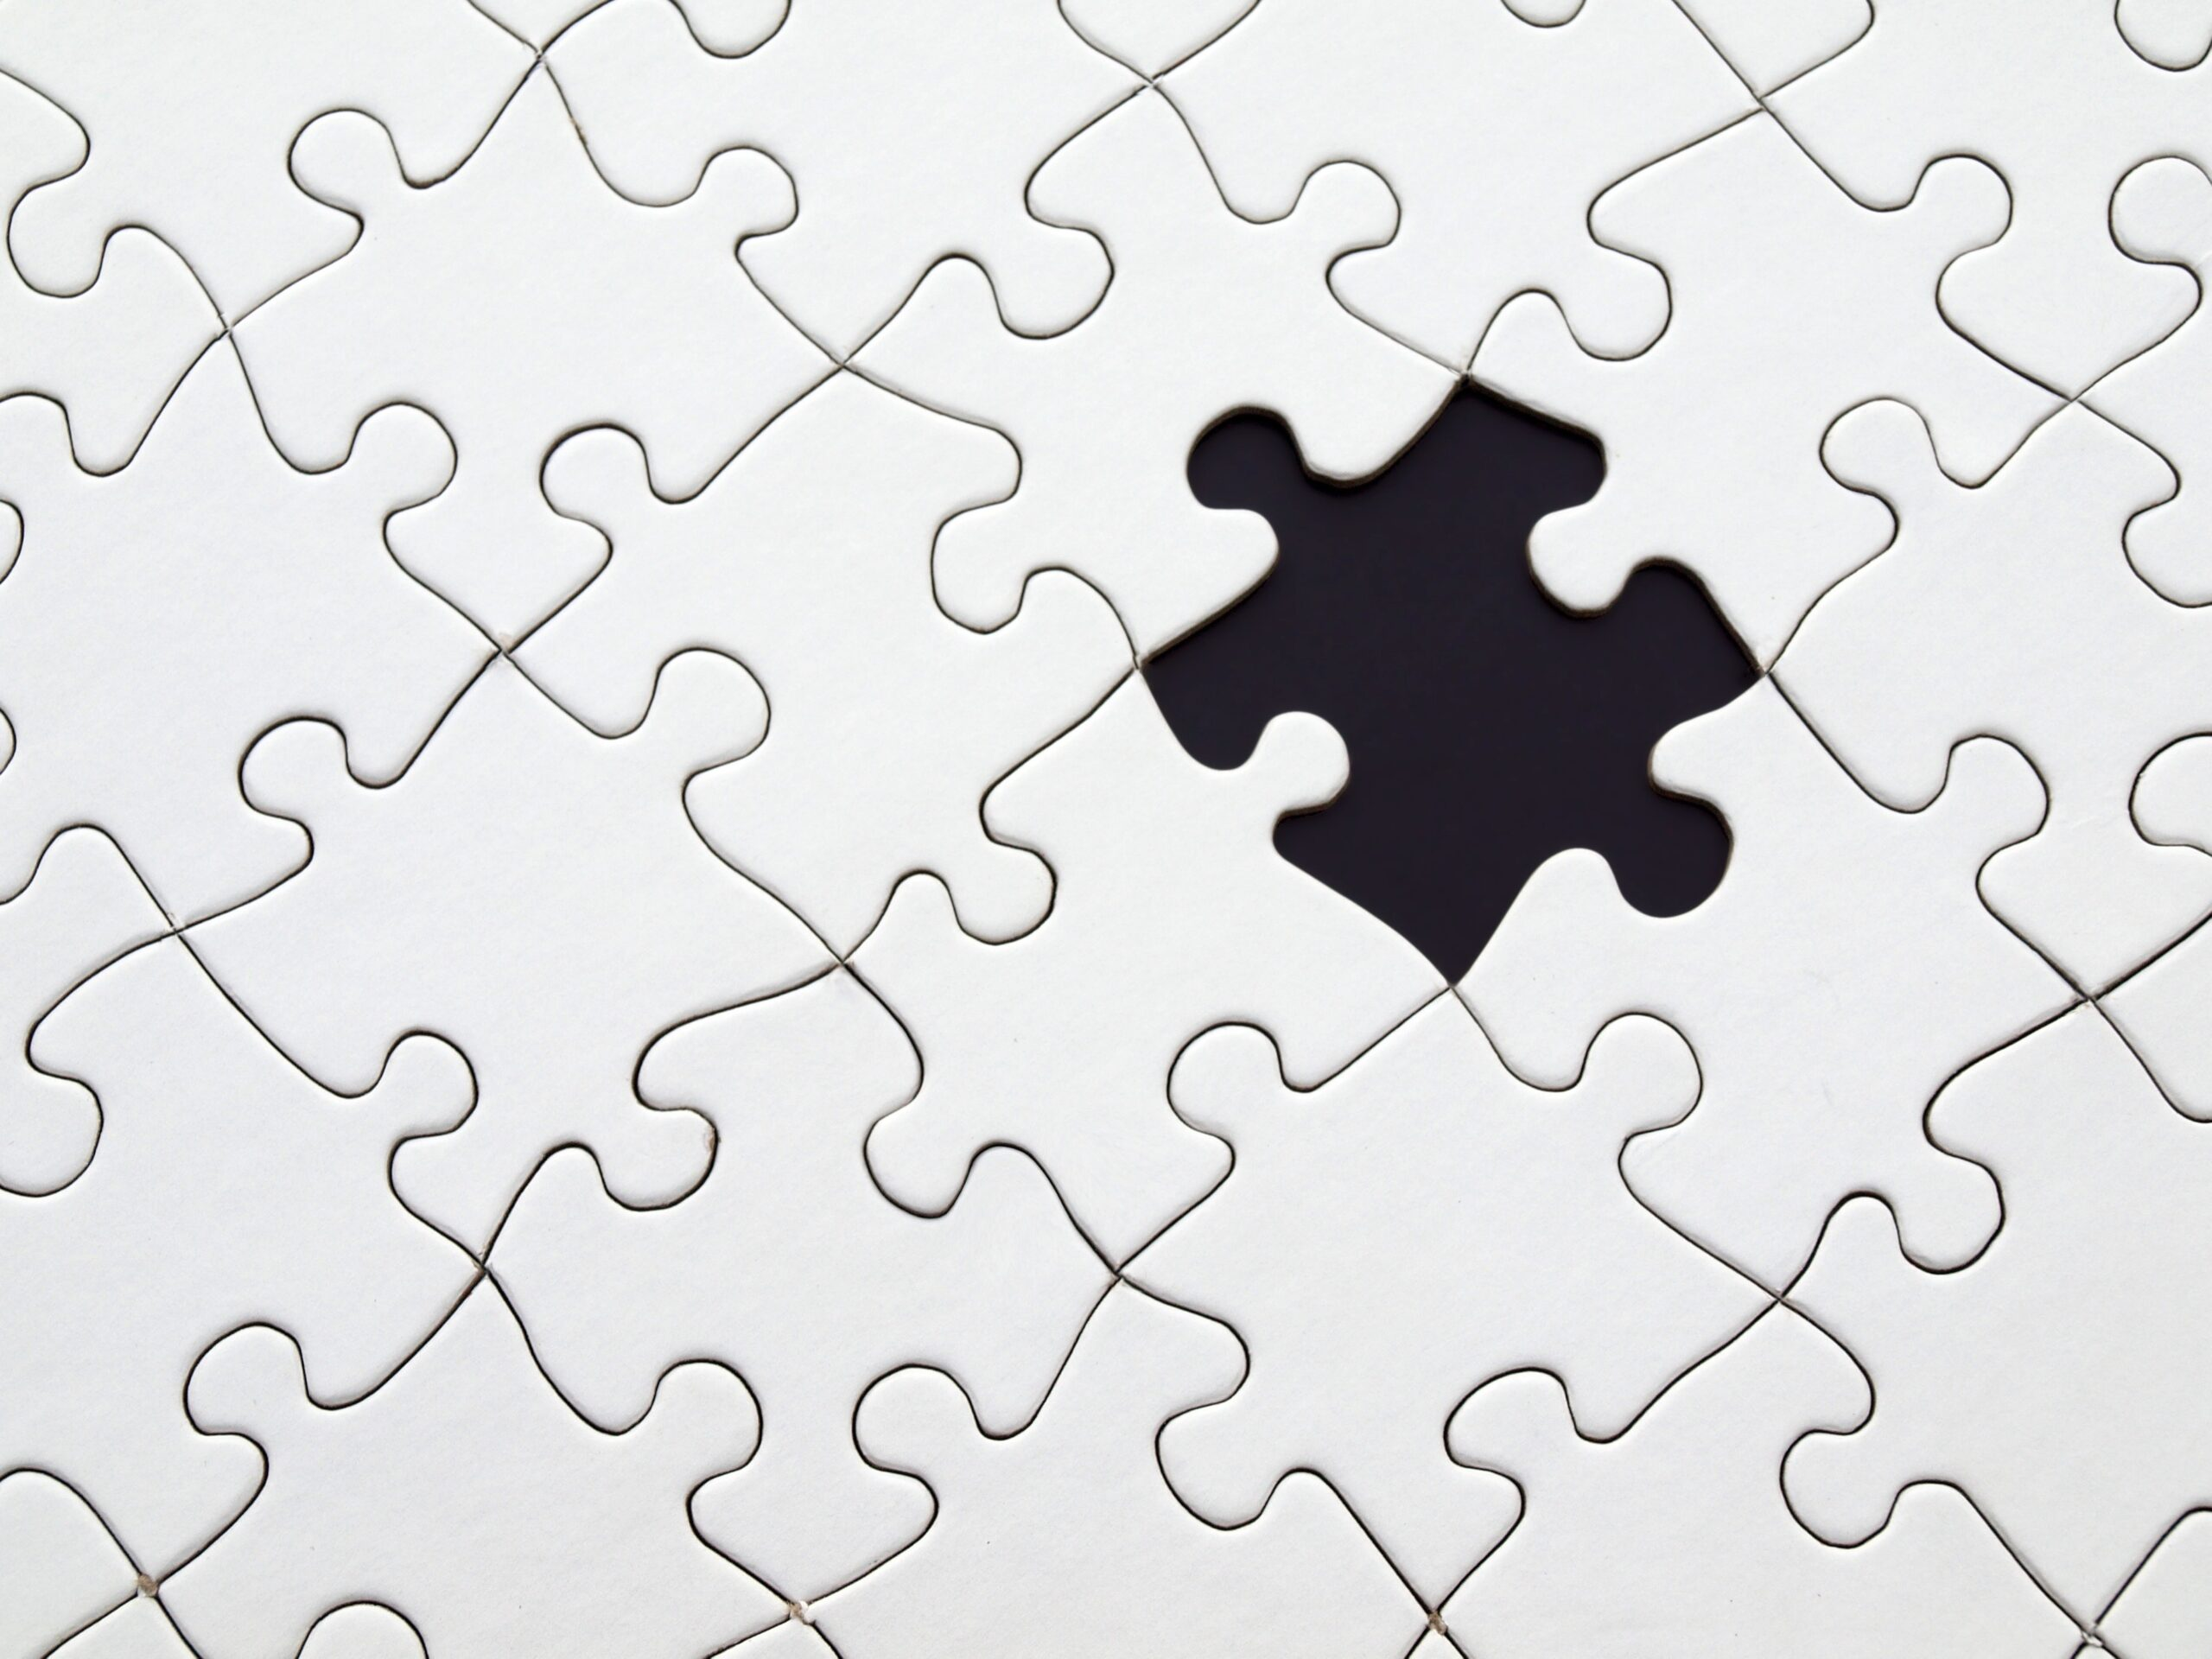 selling real estate is hard_like a puzzle